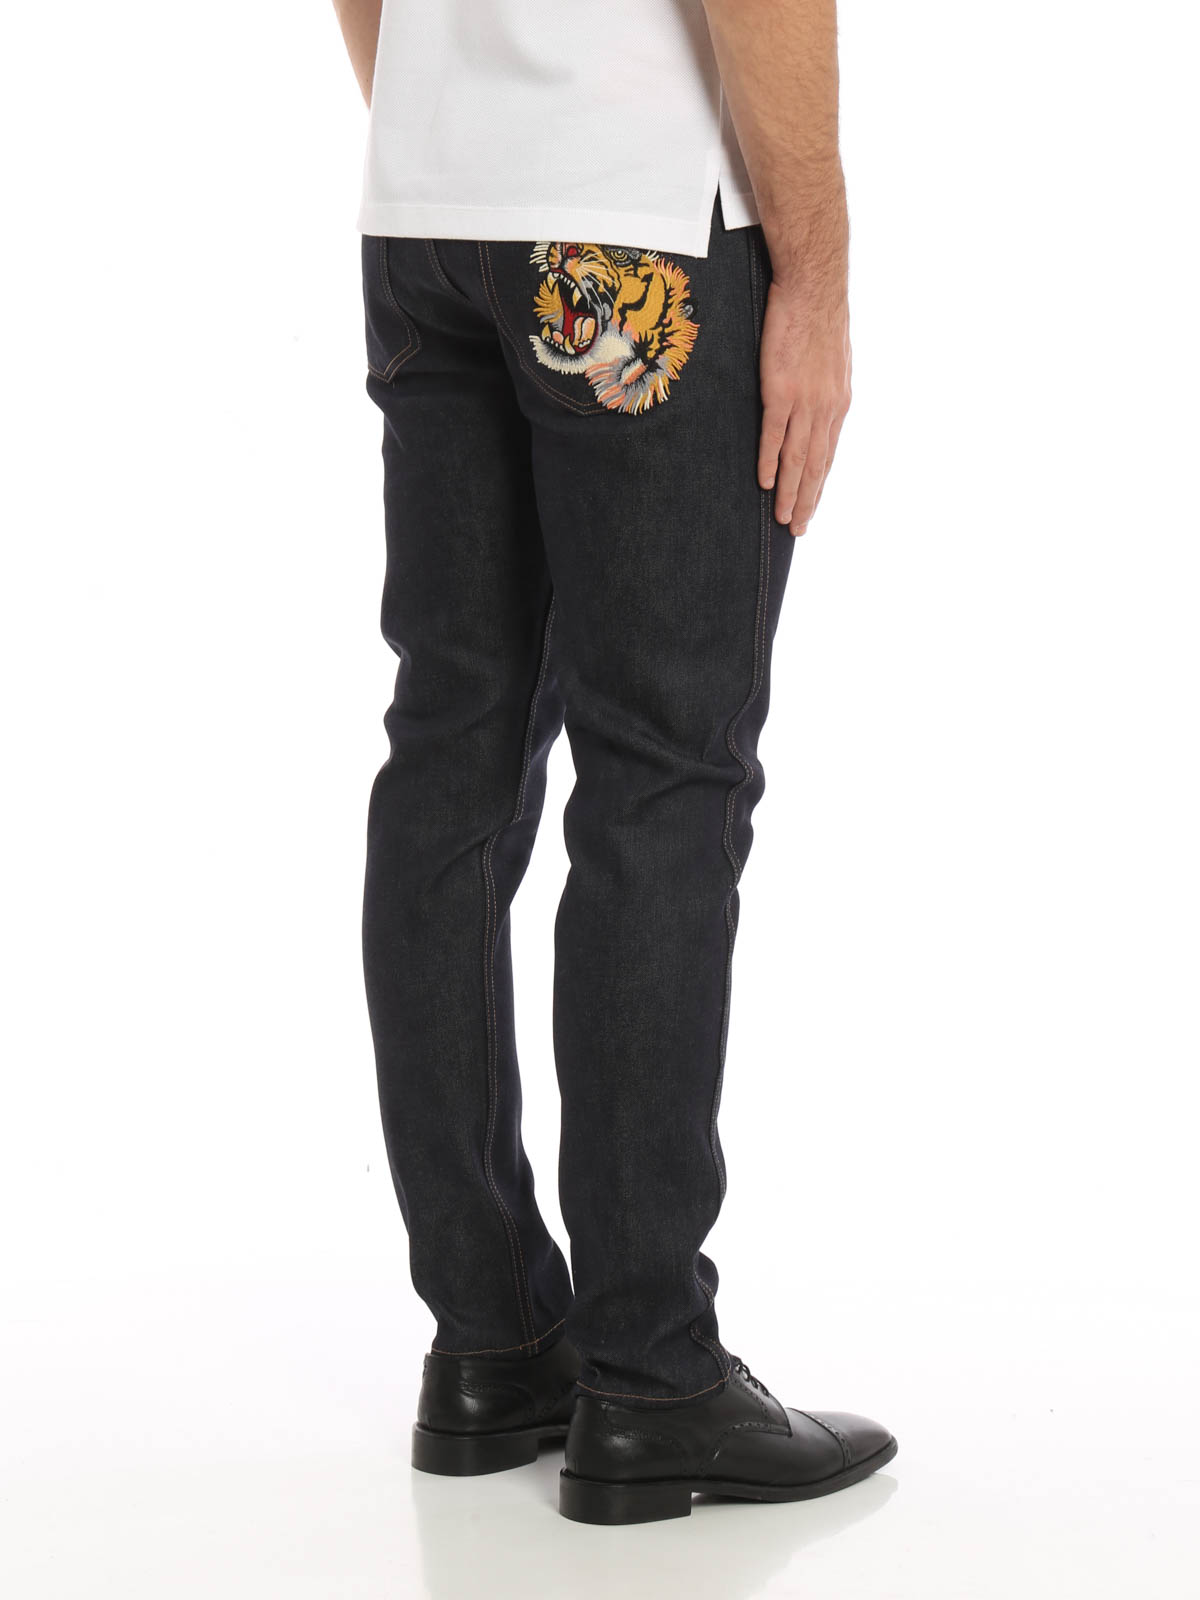 Gucci Back Tiger Patch Slim Jeans Straight Leg Jeans 408636 Xr369 4395